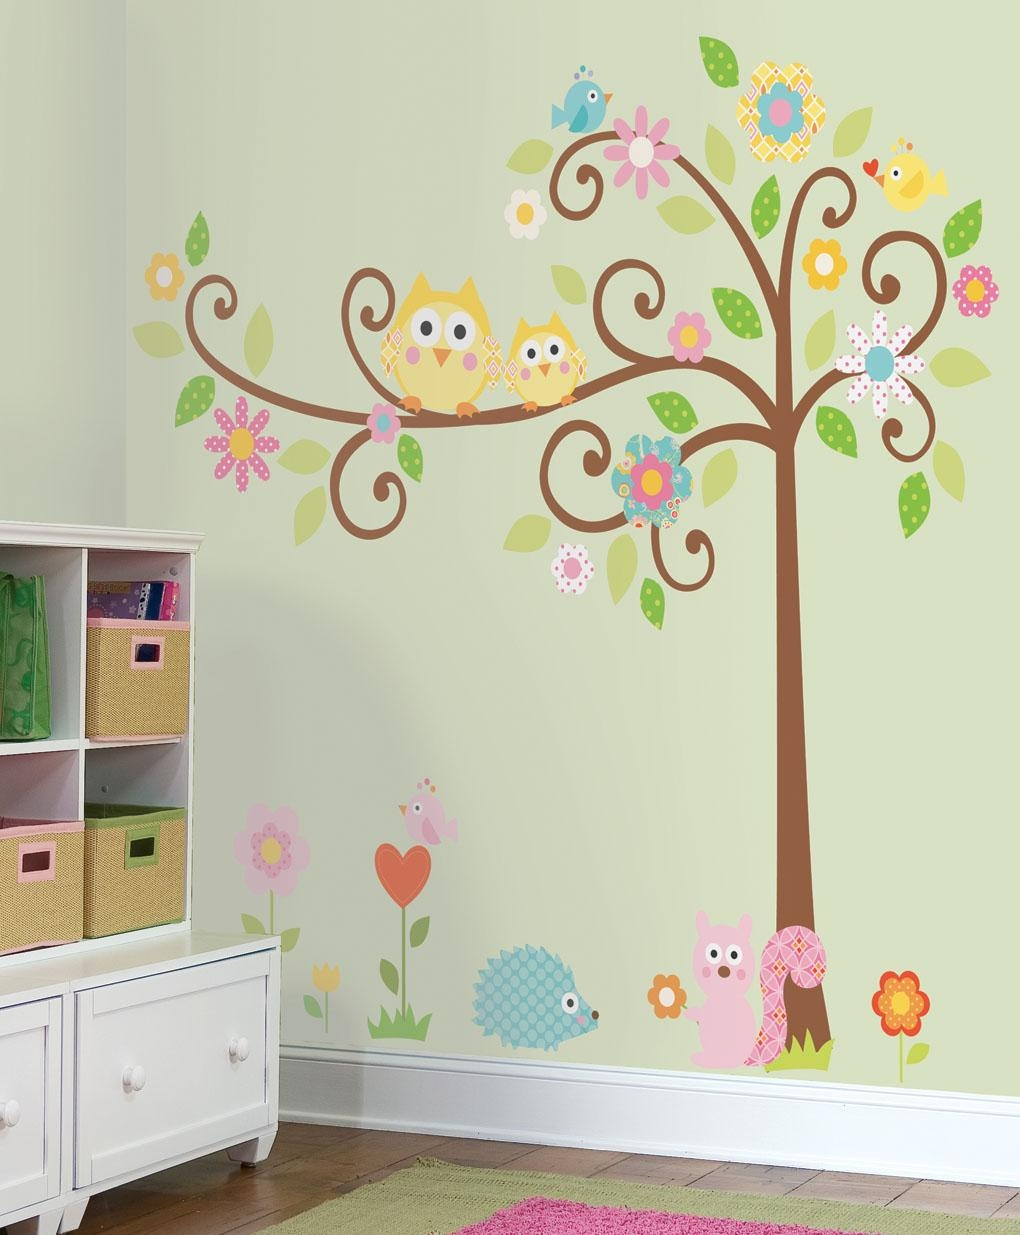 Nature-Theme Removable Wall Stickers For Kids Rooms, Nursery with Preschool Classroom Wall Decals